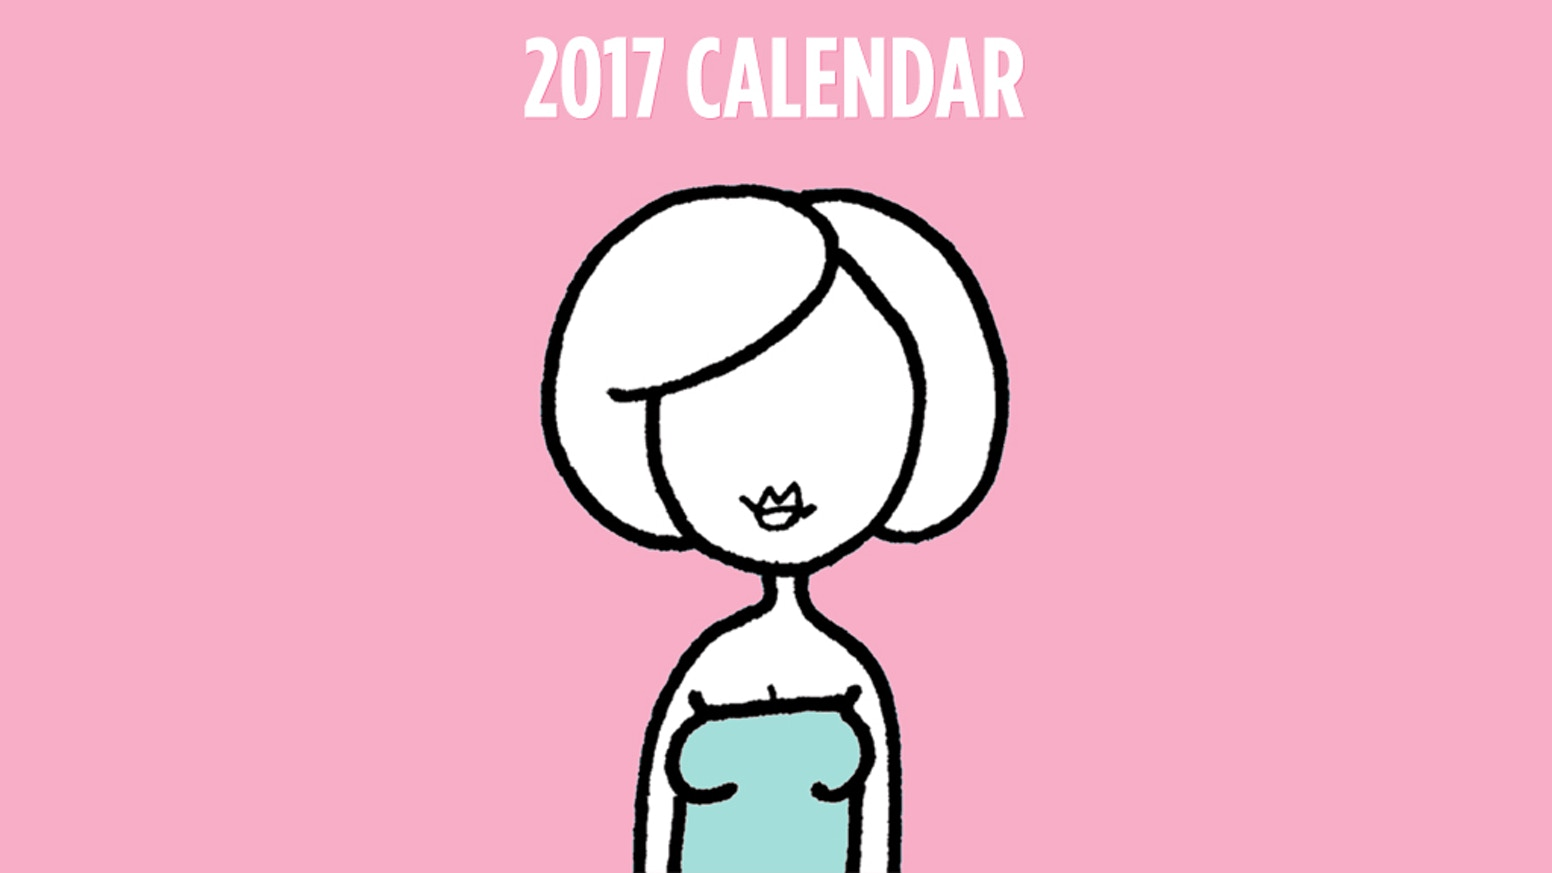 2017 calendar by everyday people cartoons by cathy thorne kickstarter